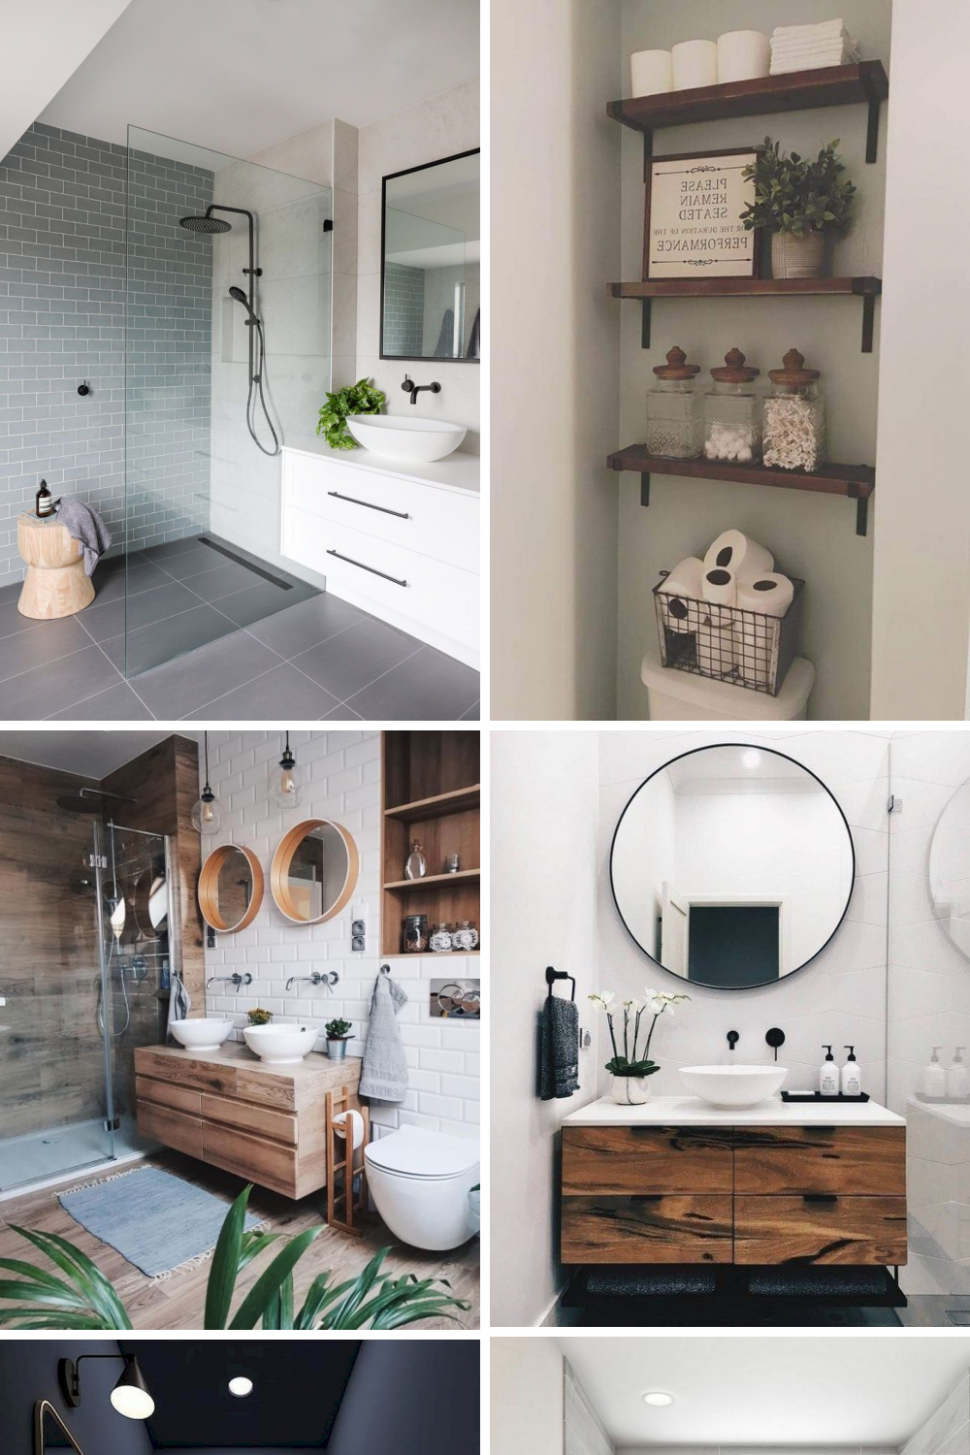 10 Awesome Bathroom Ideas Ideas You Will Fall In Love | Amazing ..